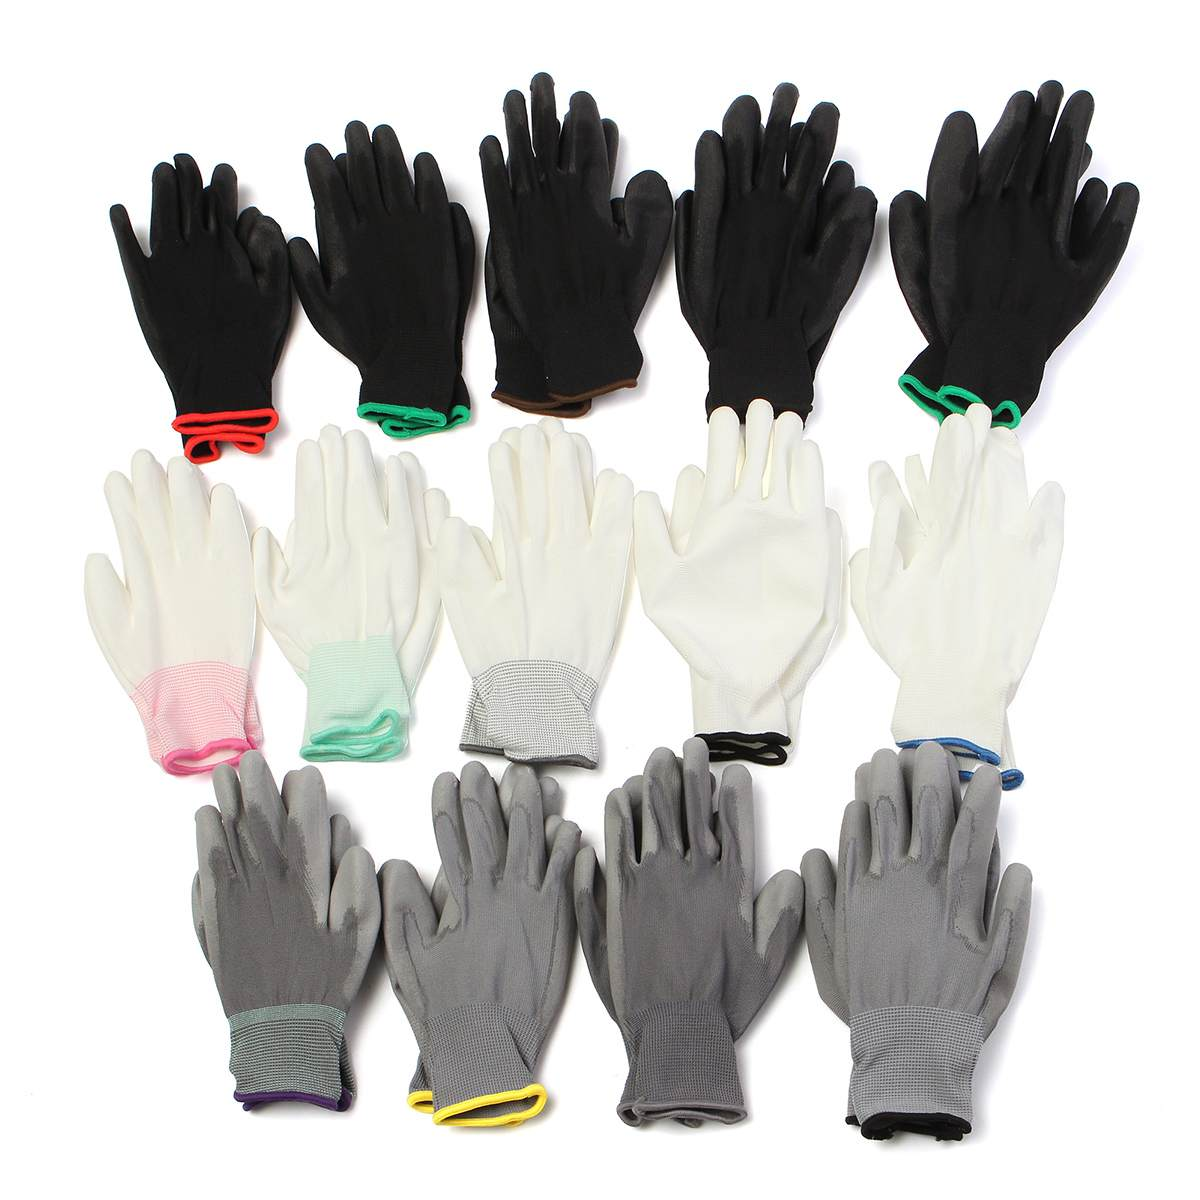 GREY PU Palm Coated Precision Work Gloves Multi Purpose Hand Protection